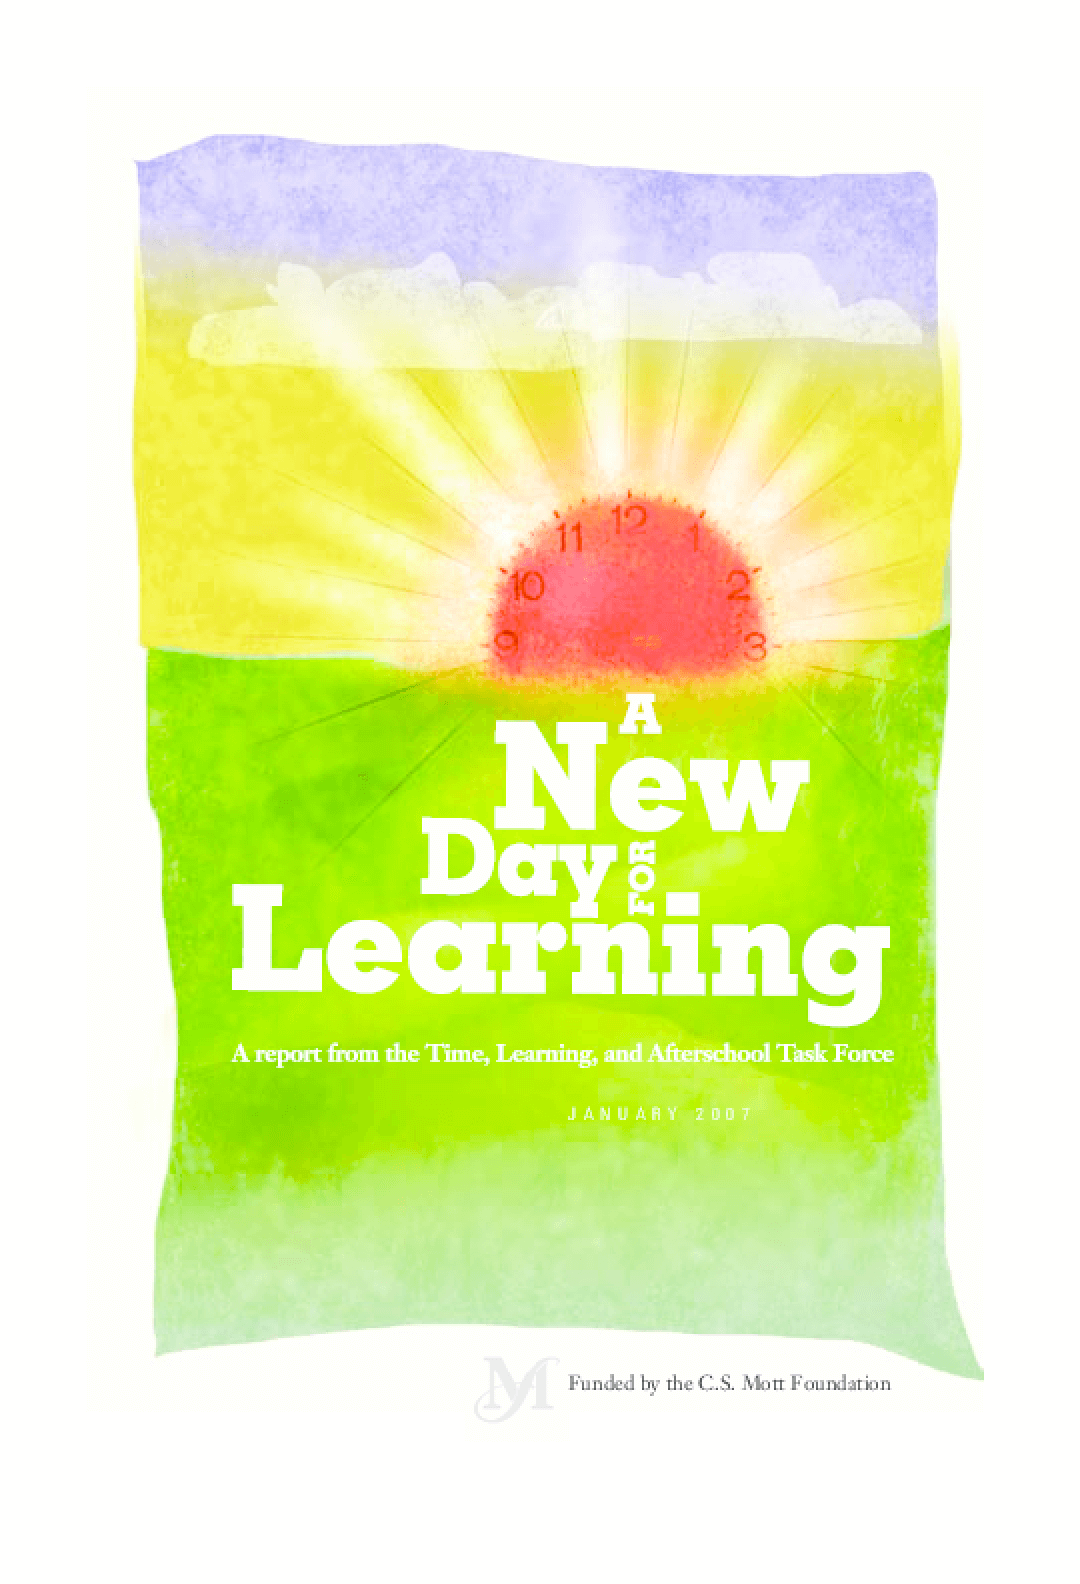 A New Day for Learning